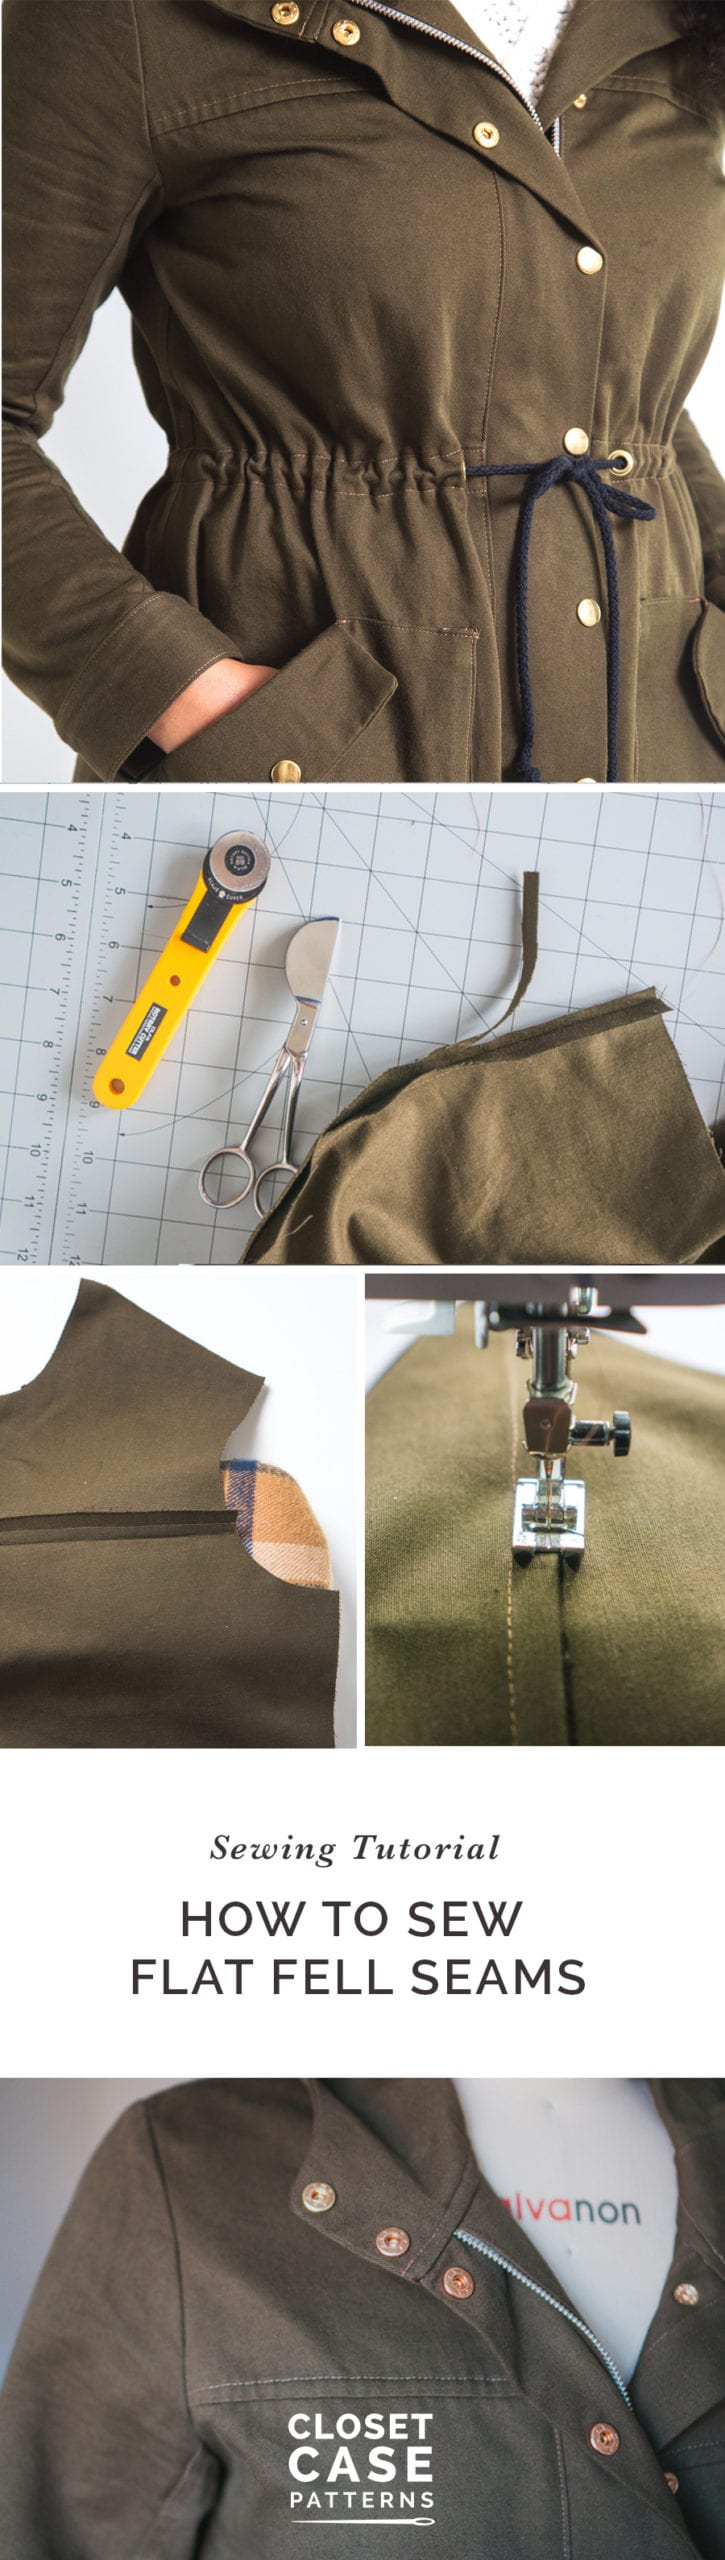 How to Sew Flat Felled Seams // Kelly Anorak Sewalong